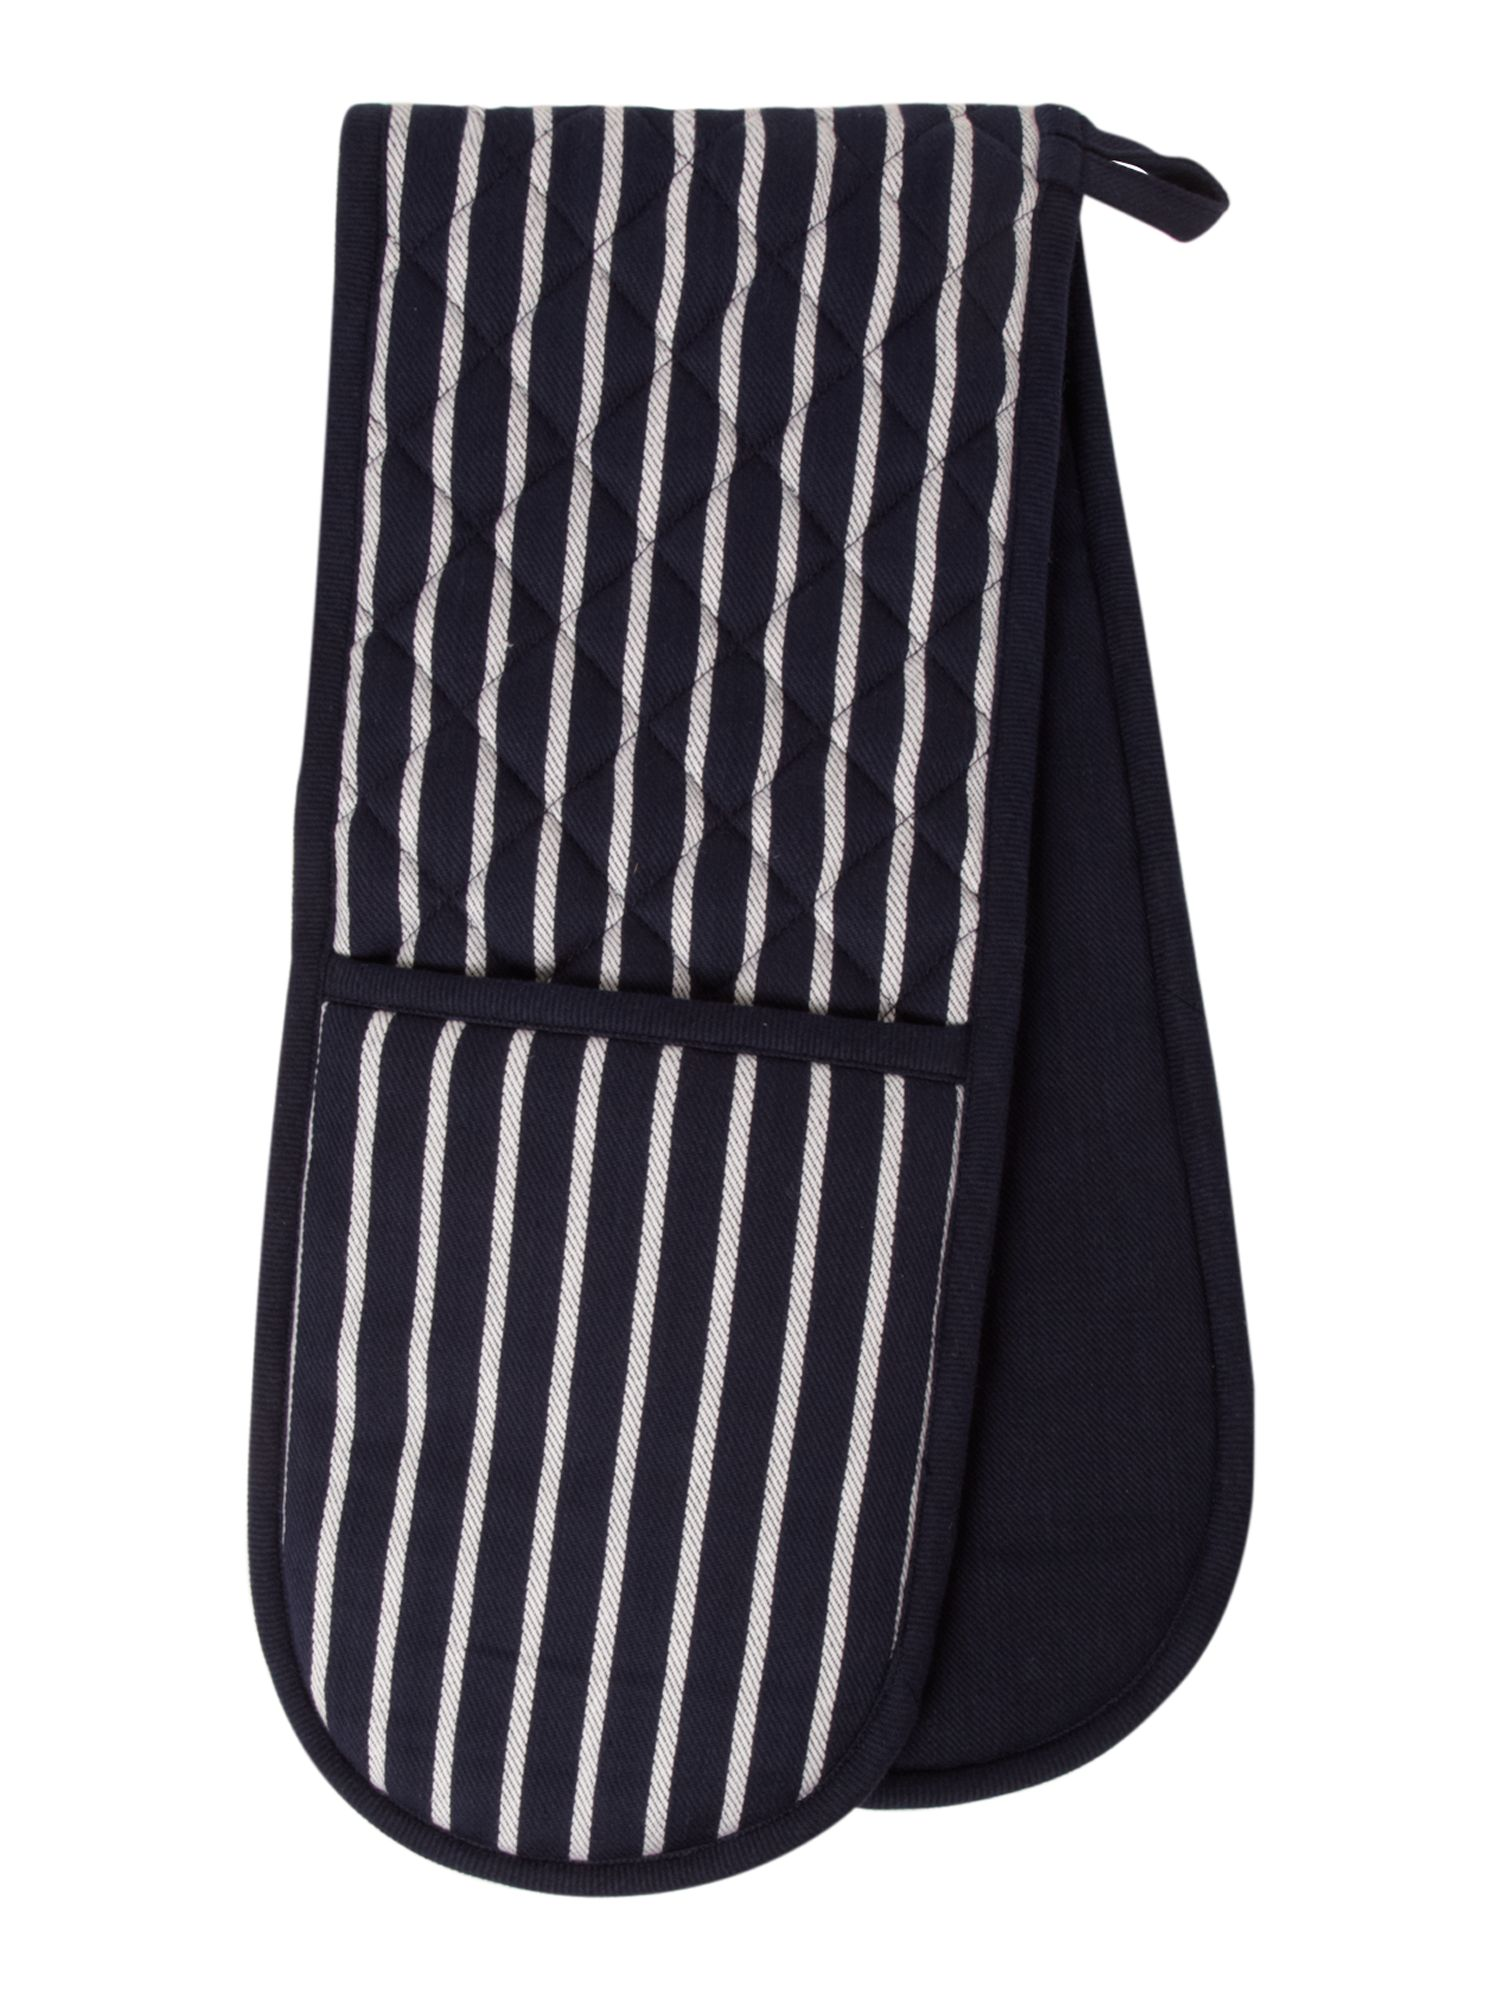 Butcher stripe double oven glove